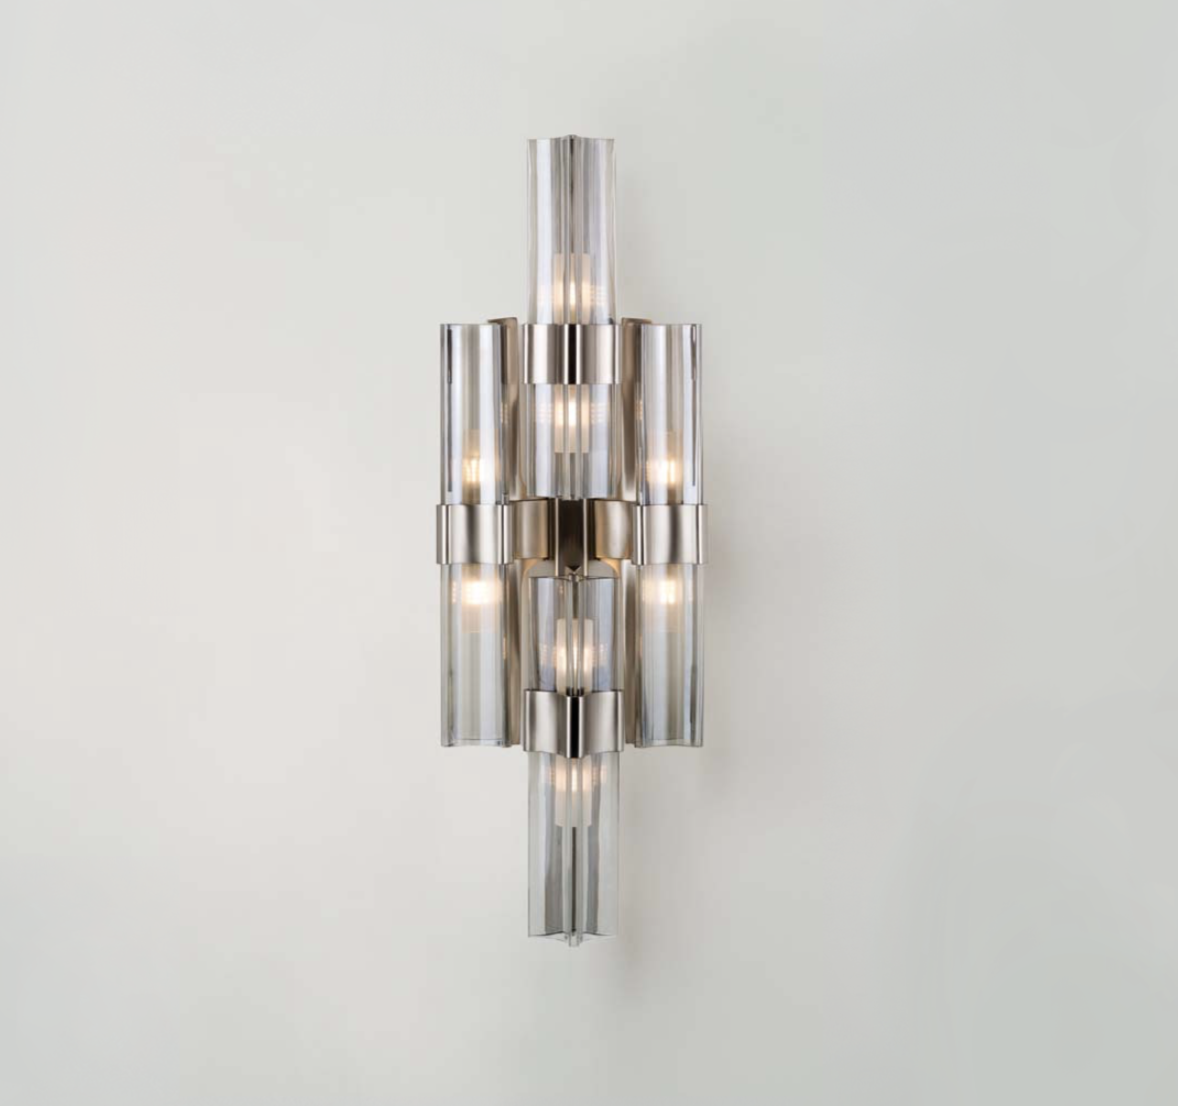 Officina Luce Eterea wall light in polished nickel via Masha Shapiro Agency UK.jpg